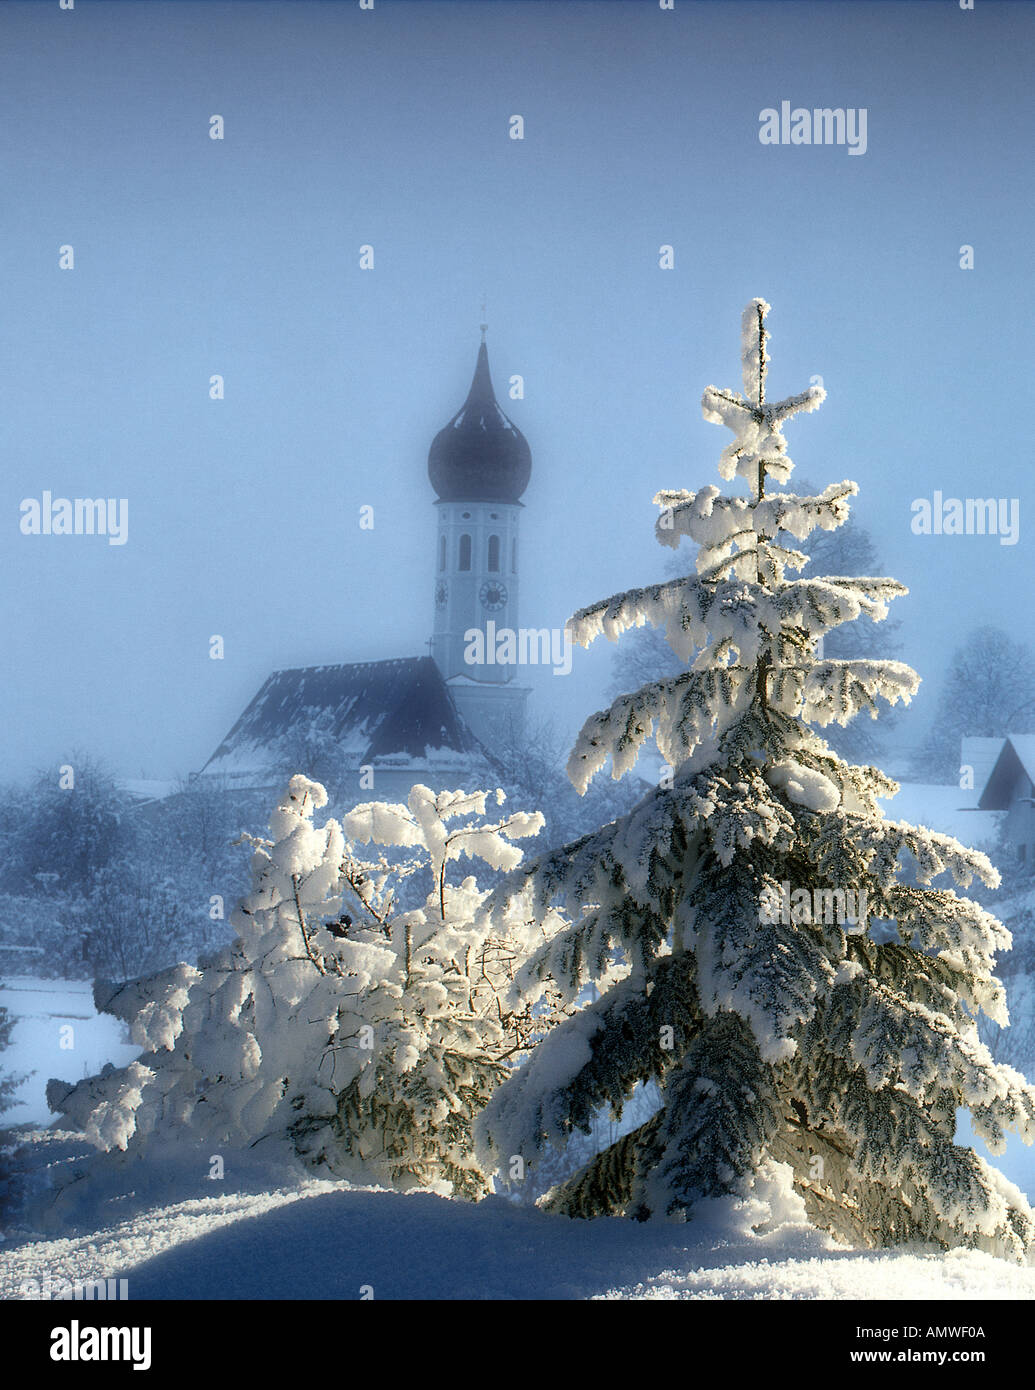 DE - BAVARIA: Wintertime at Irschenberg - Stock Image